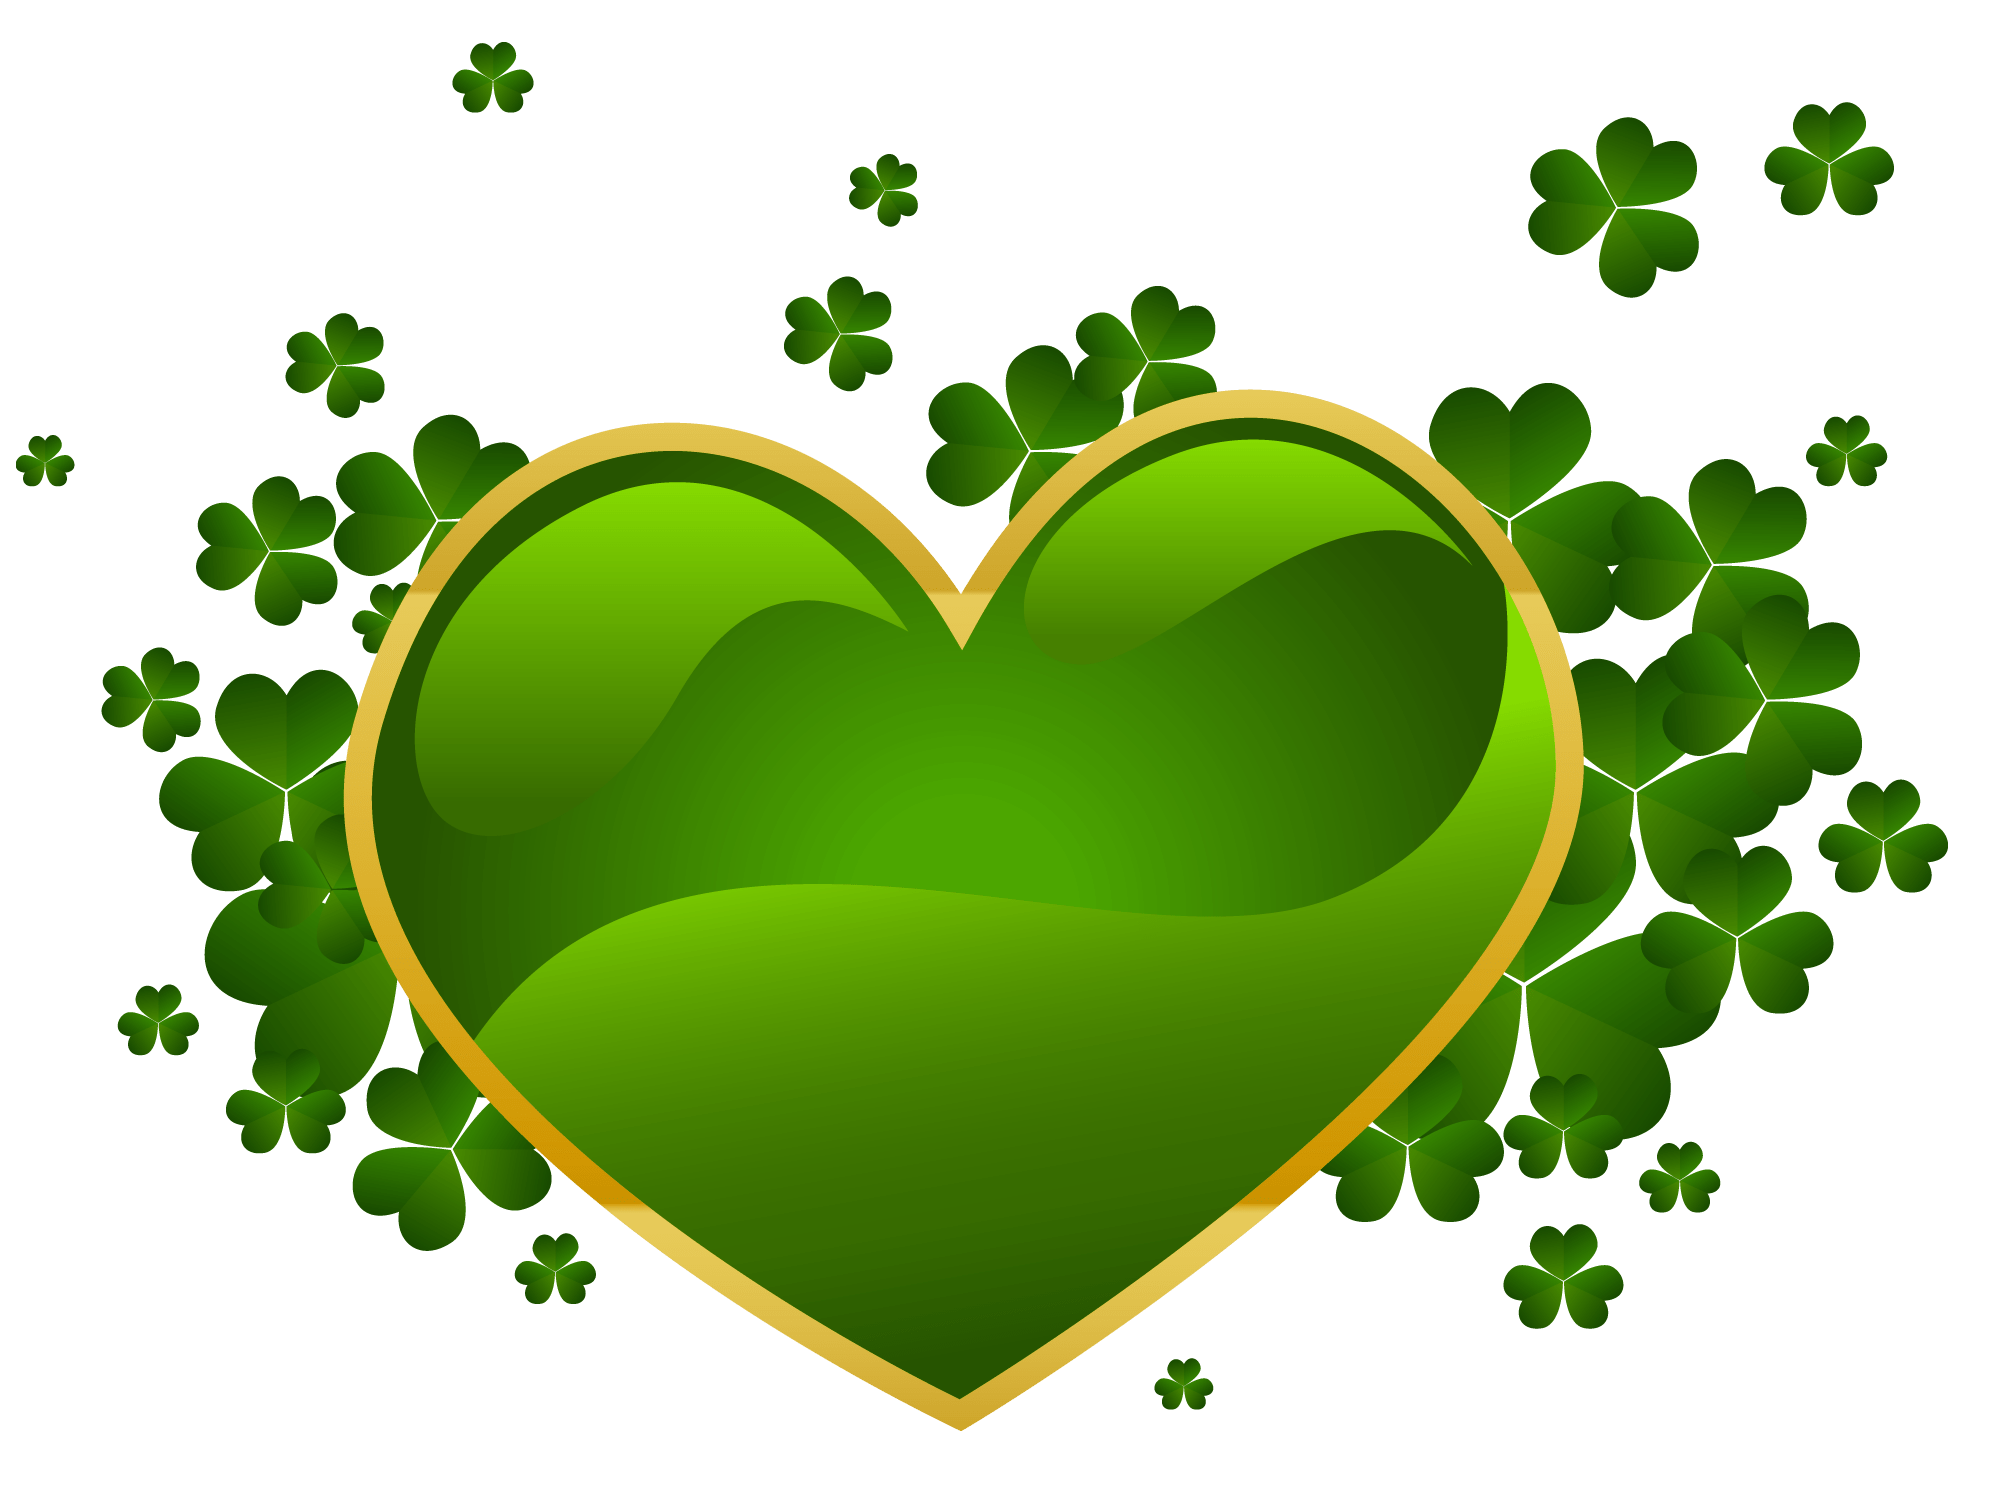 1990x1501 Happy St Patrick's Day Green Heart Transparent Png